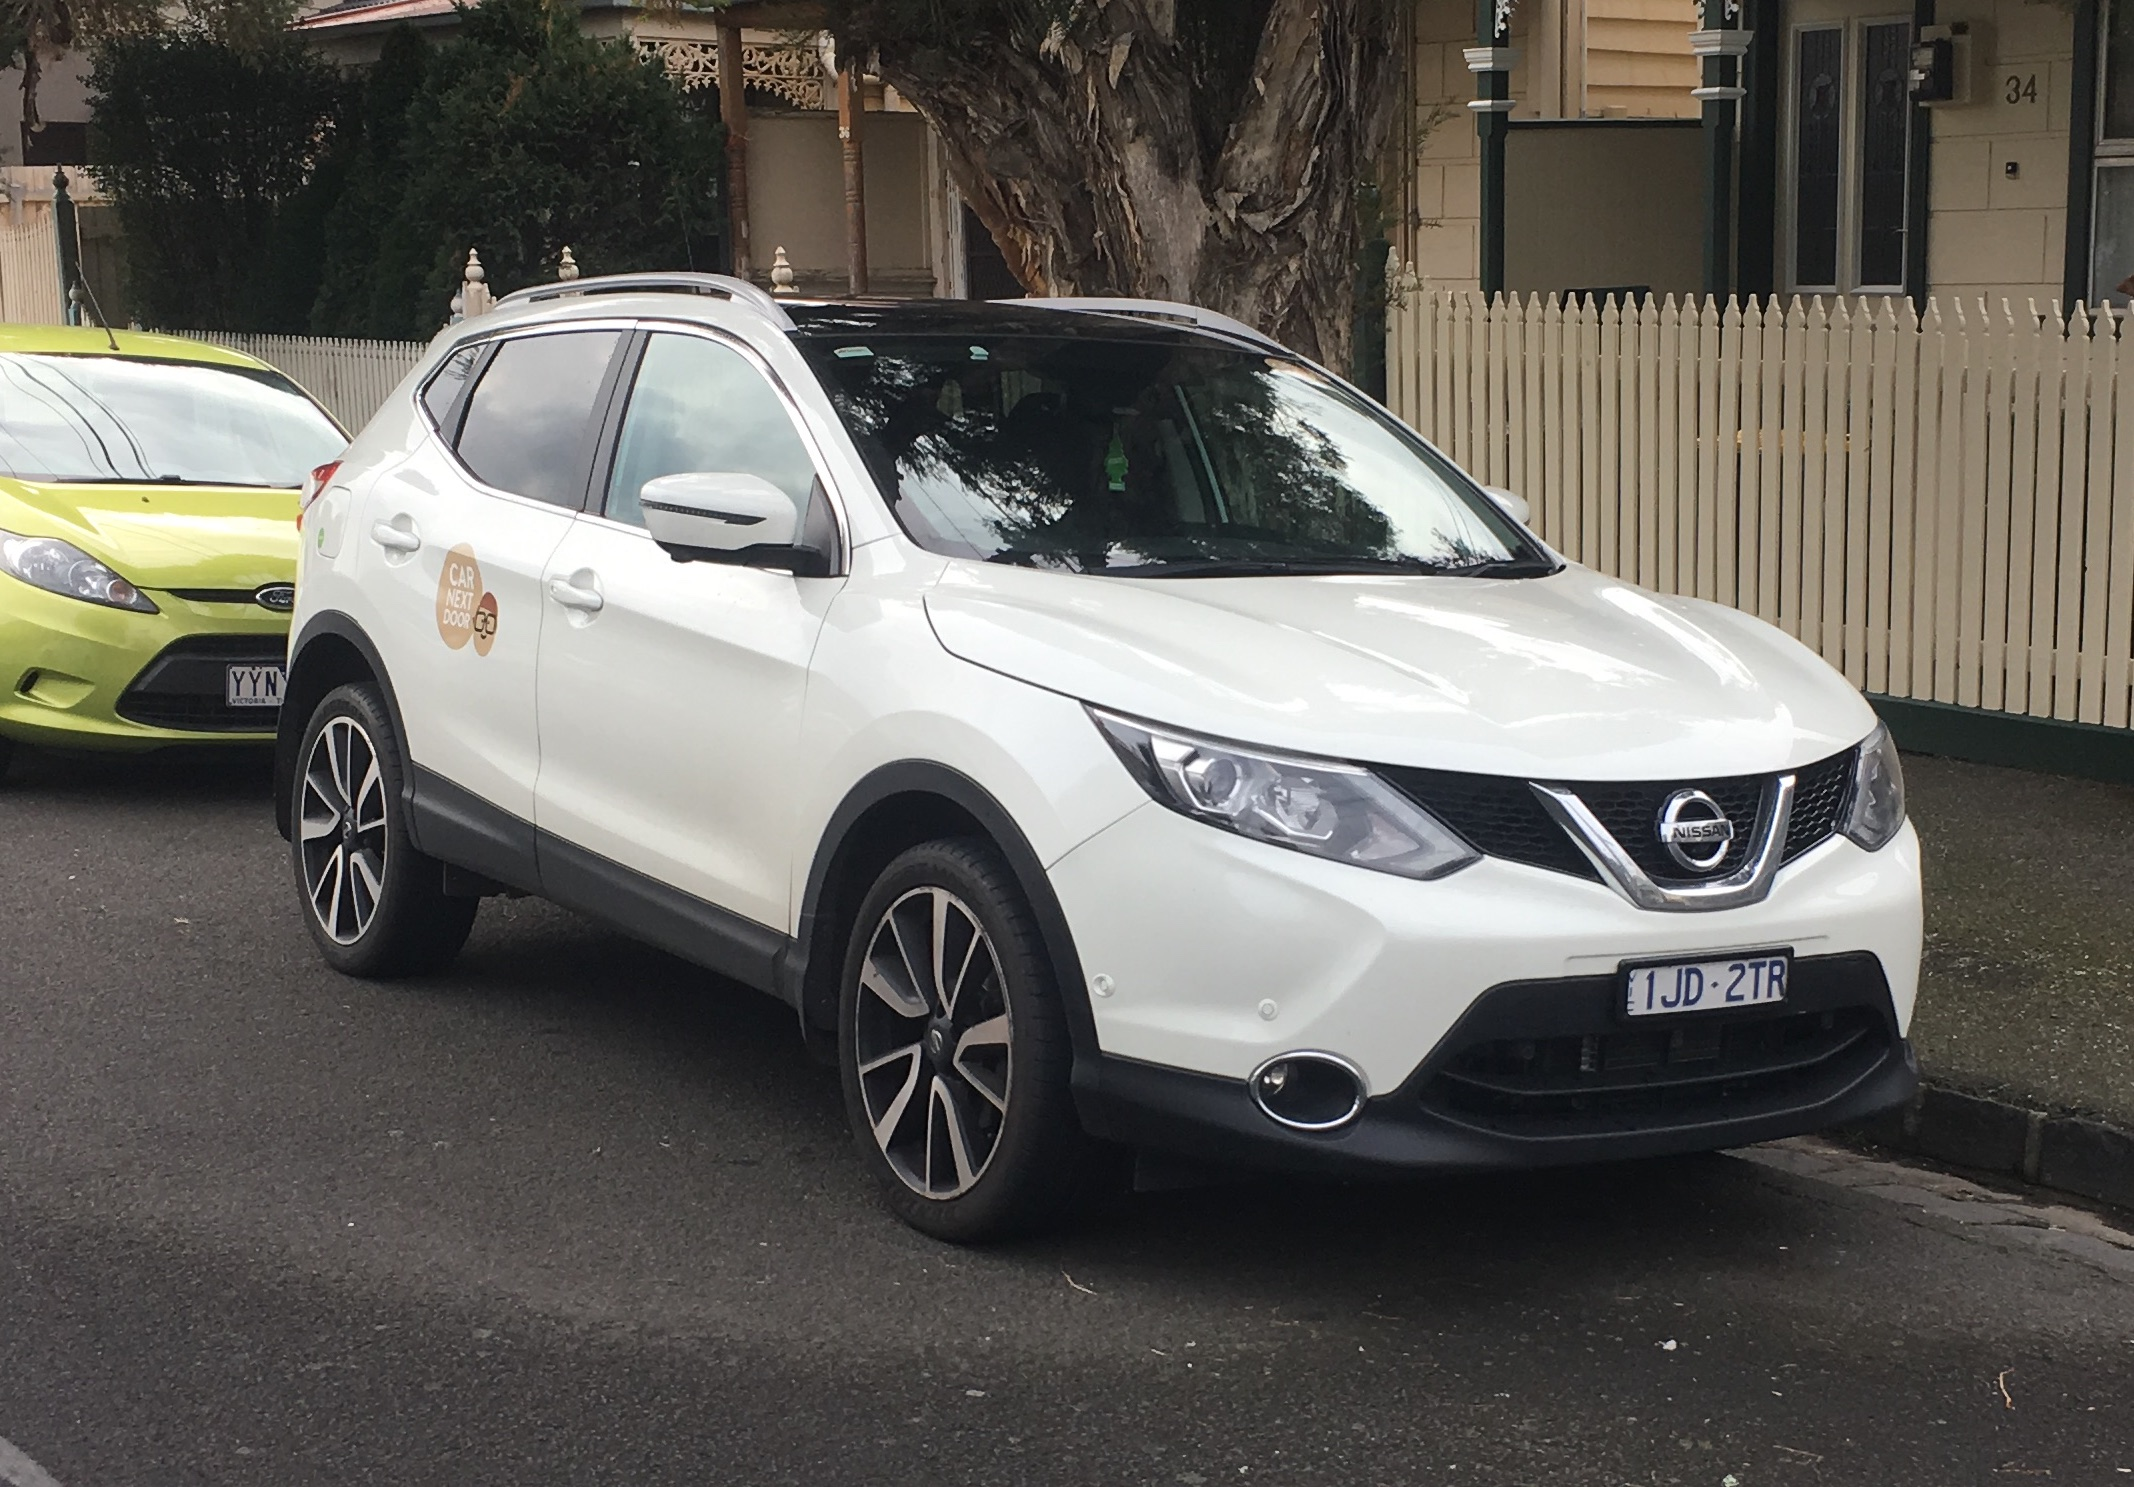 Picture of Rodwan's 2015 Nissan Qashqai